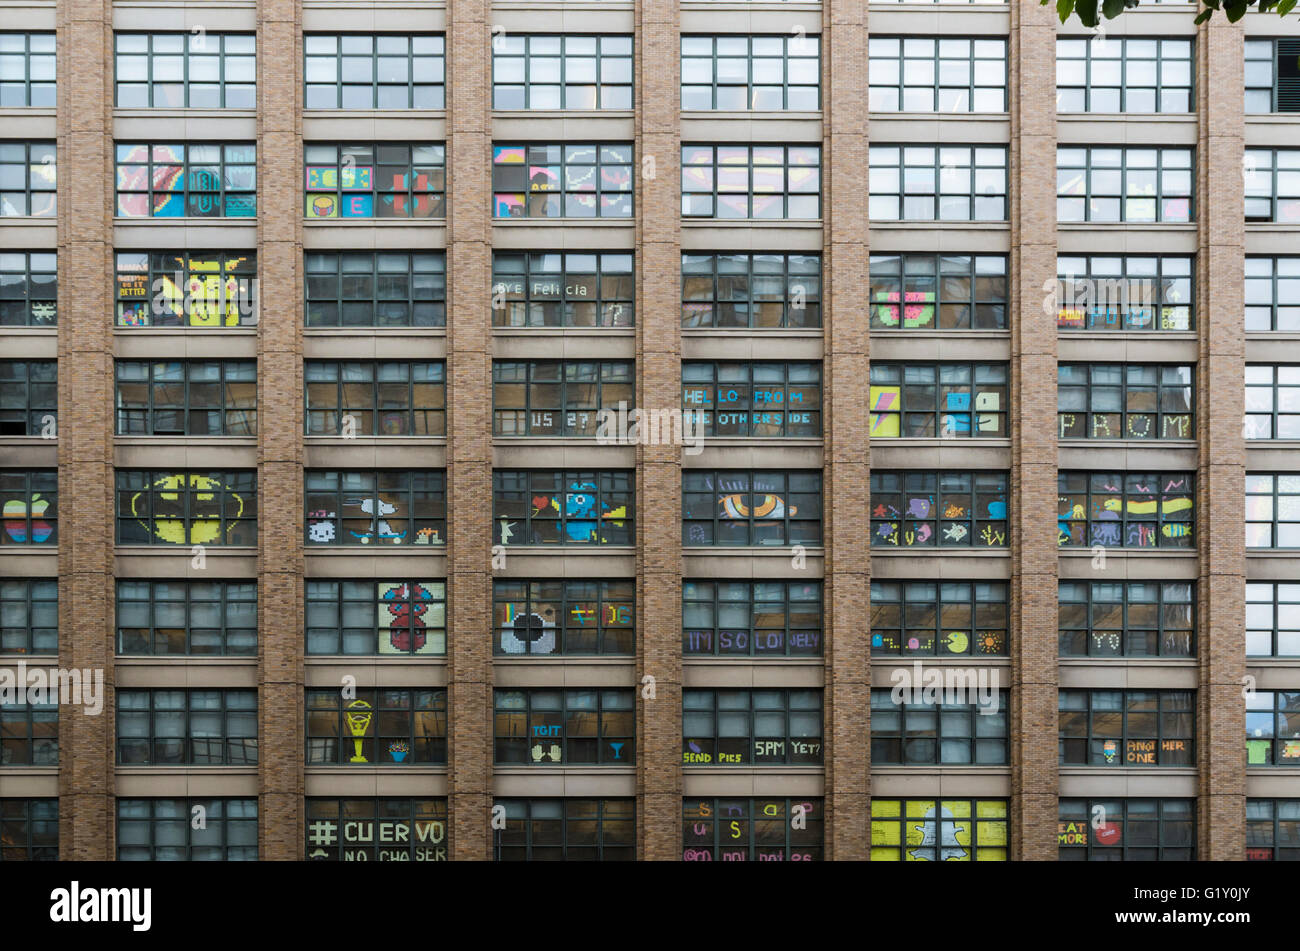 Colourful Pixel Art Made From Post It Notes By Employees In The Windows Of  Rival Office Buildings On Canal Street New York City